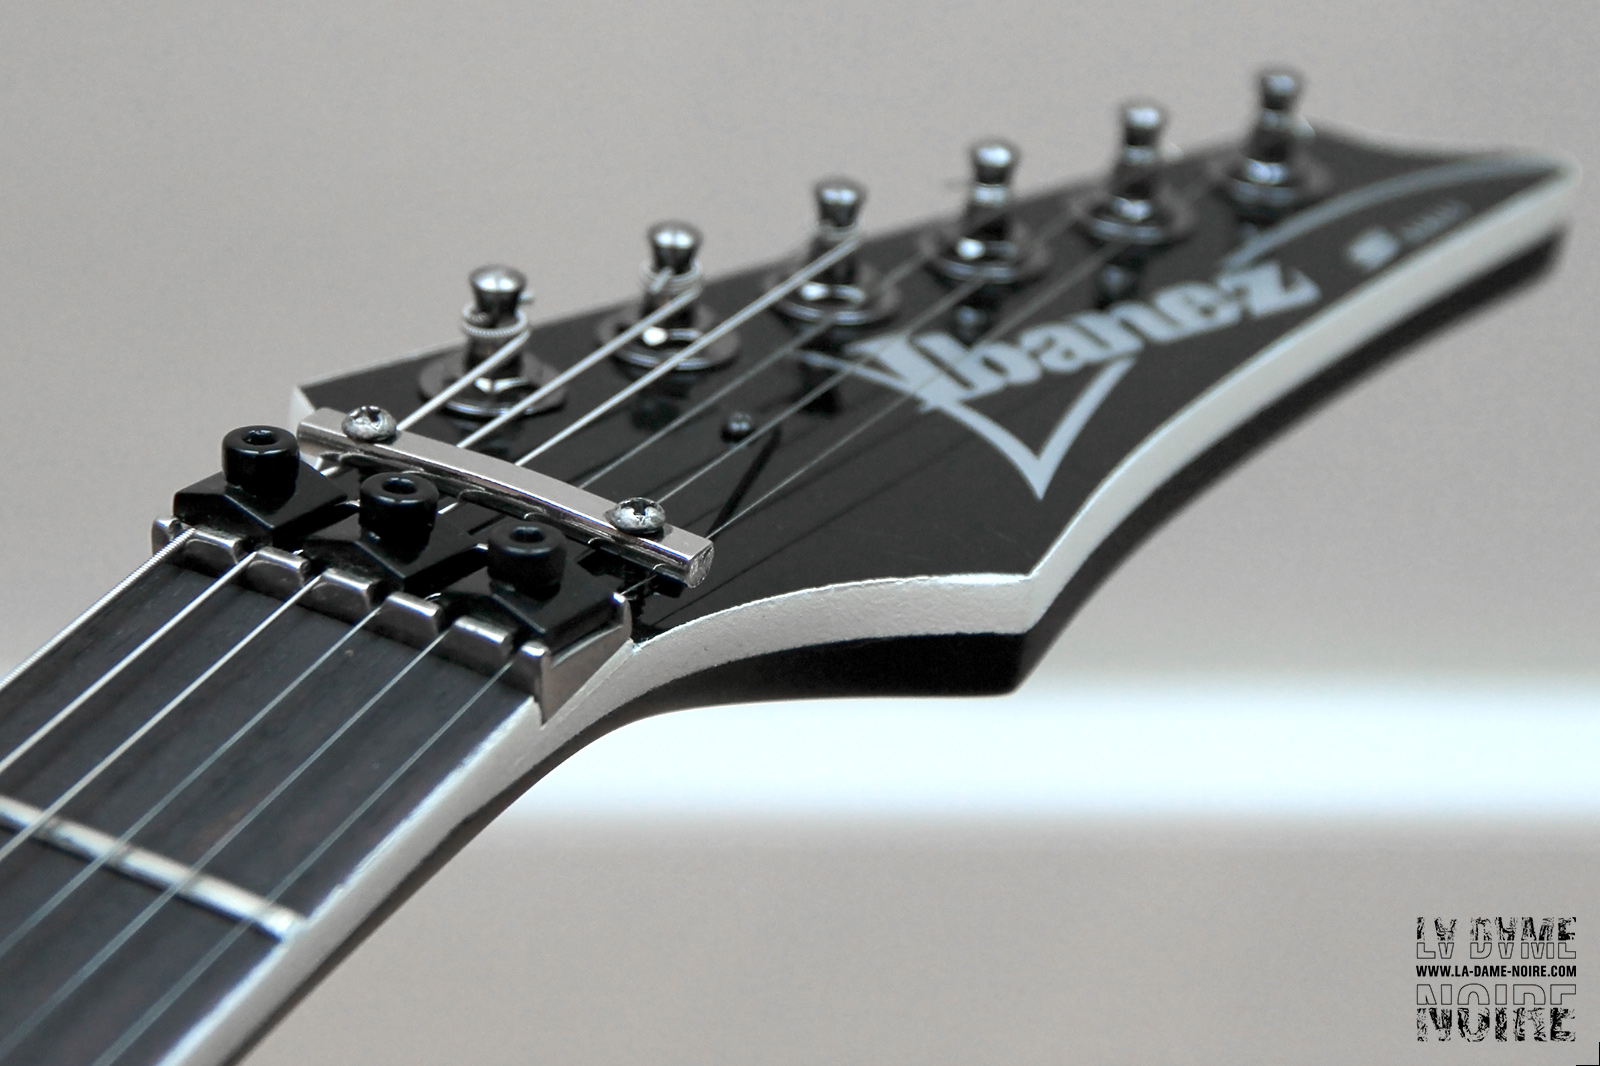 Picture of the guitar head painted in black and white line with cleaned tuners